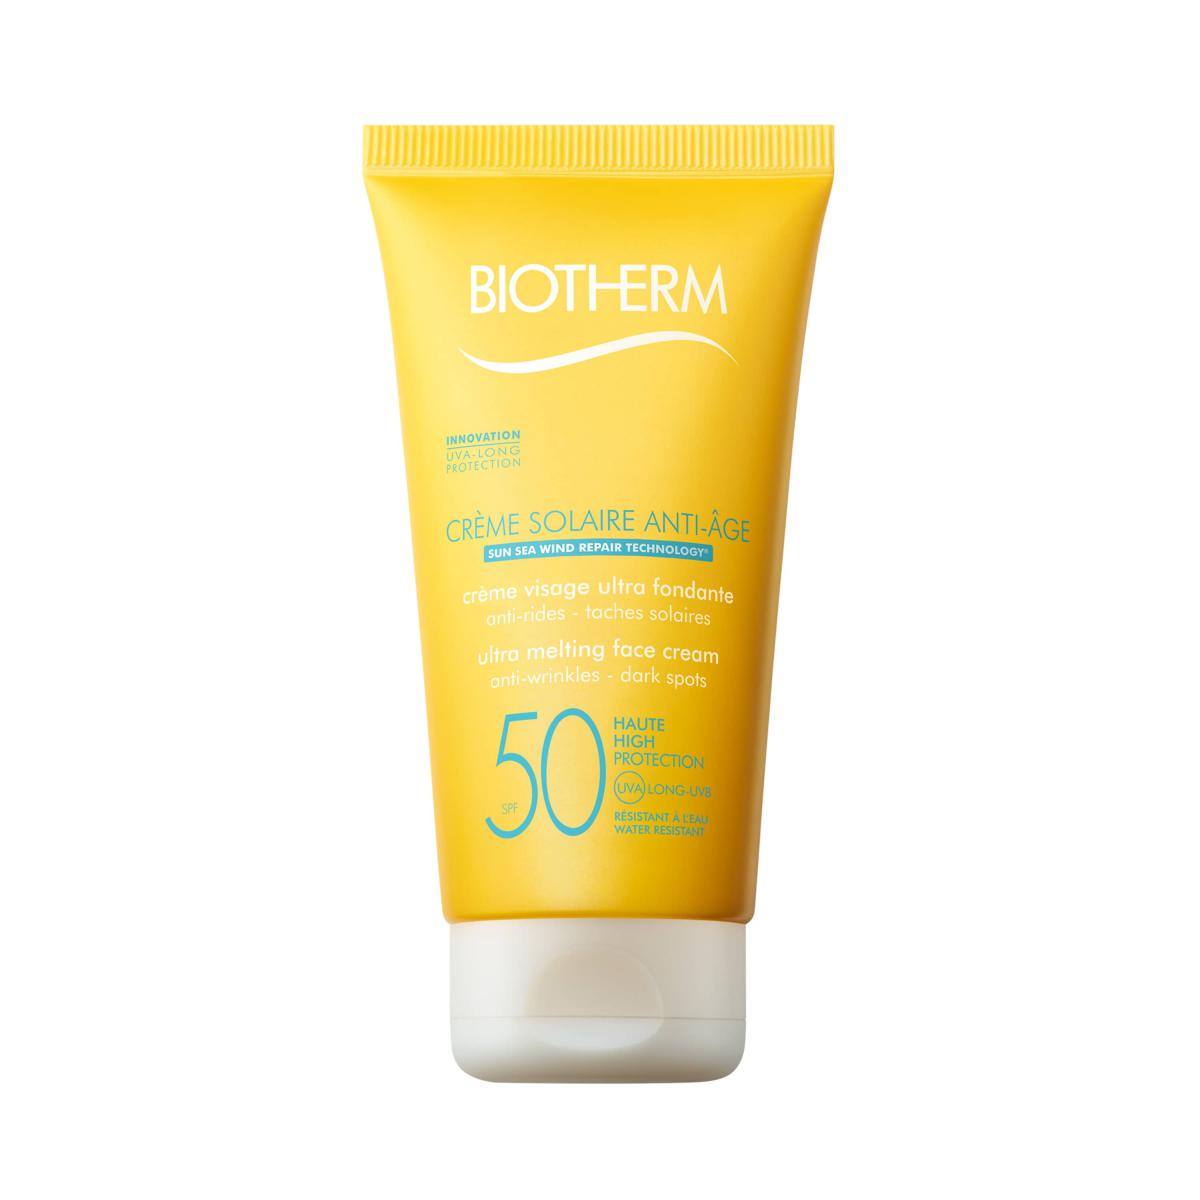 CREME SOLAIRE VISAGE ANTI-AGE SPF Biotherm Homme